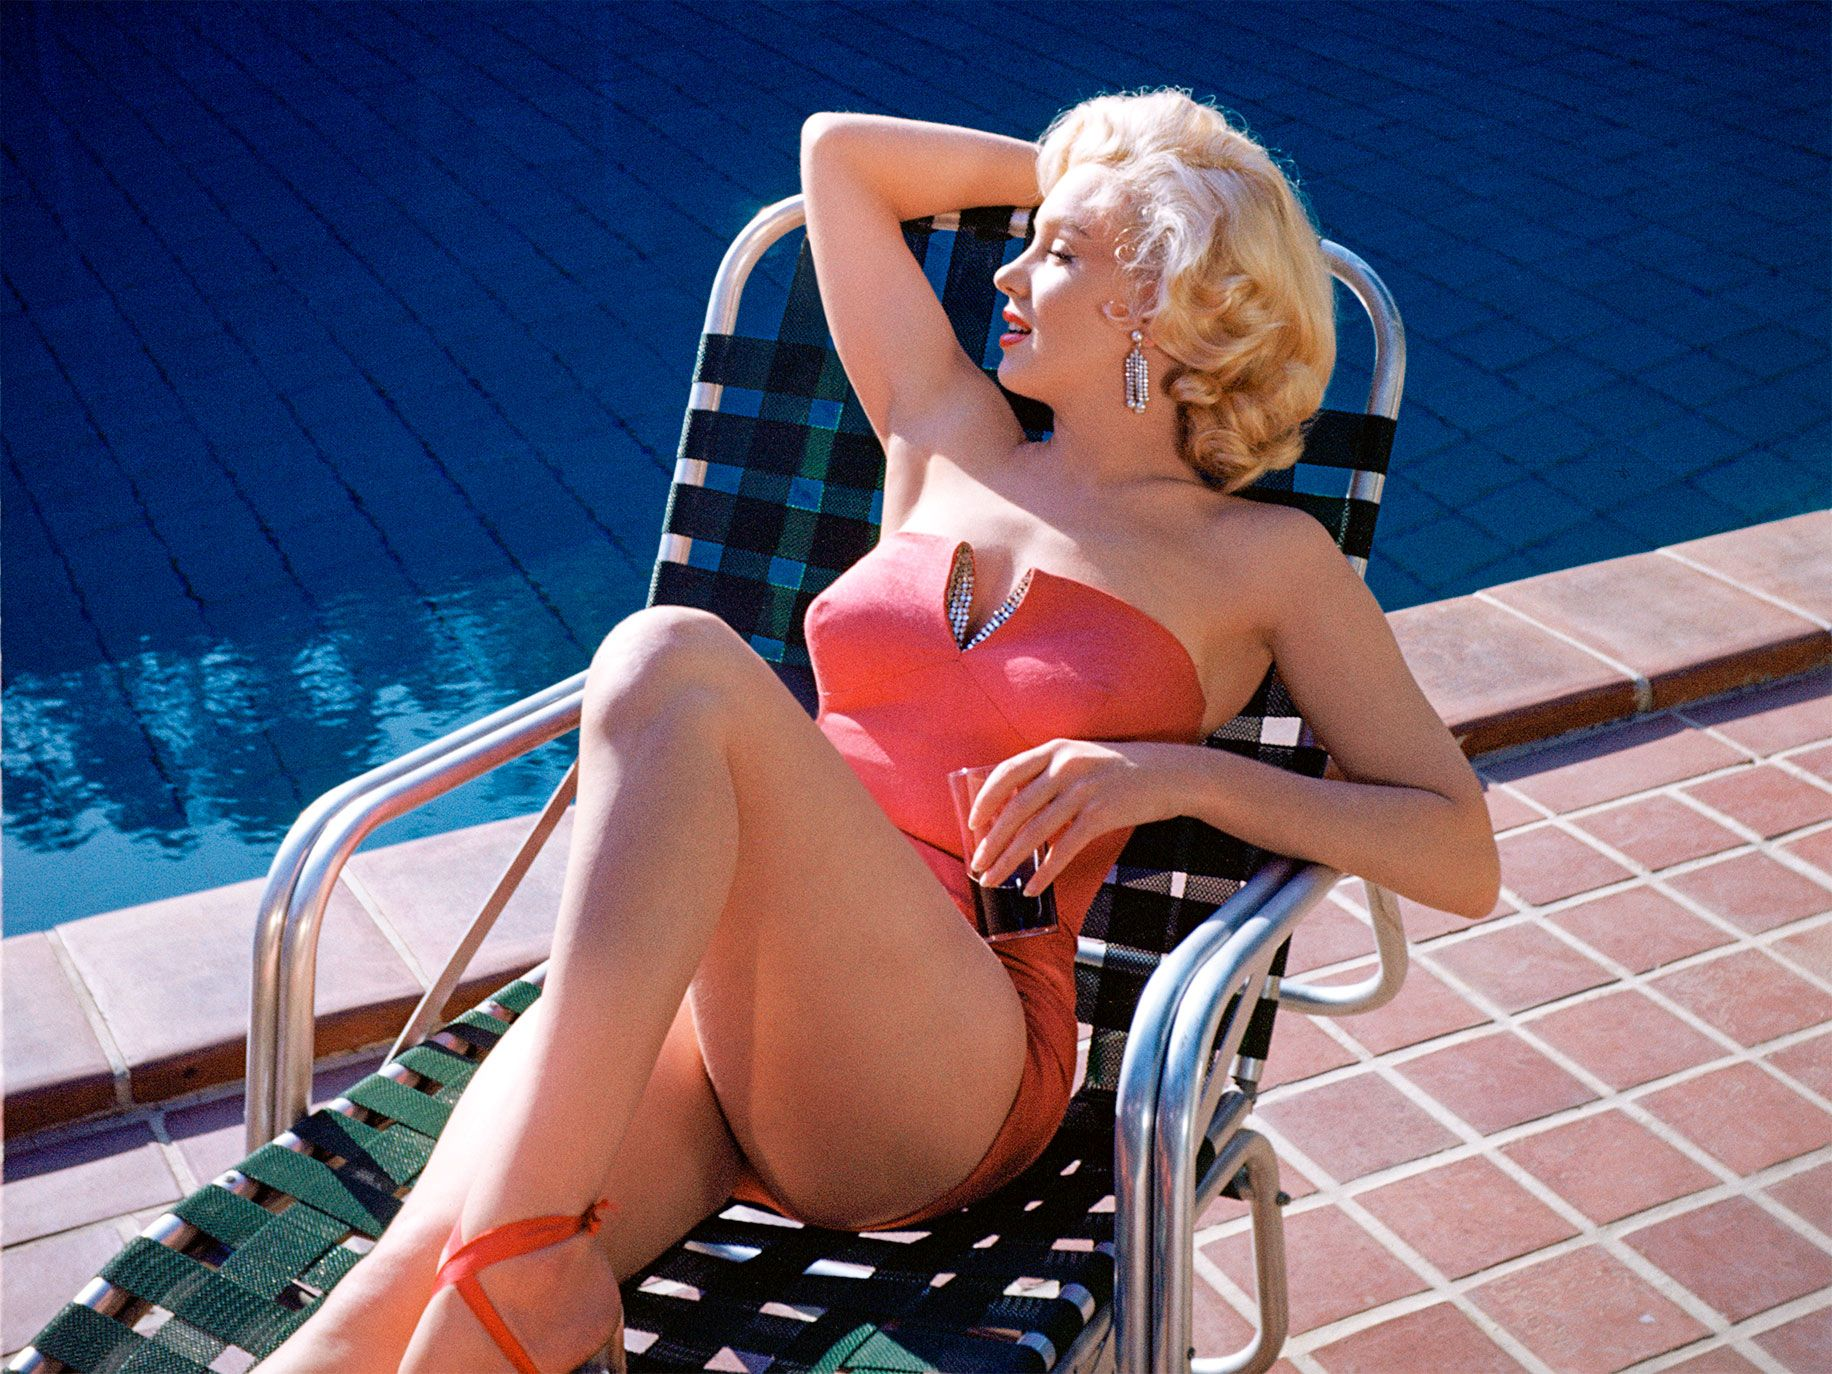 Monroe posing for photos by the swimming pool at Harold Lloyd's Greenacres estate in 1953.